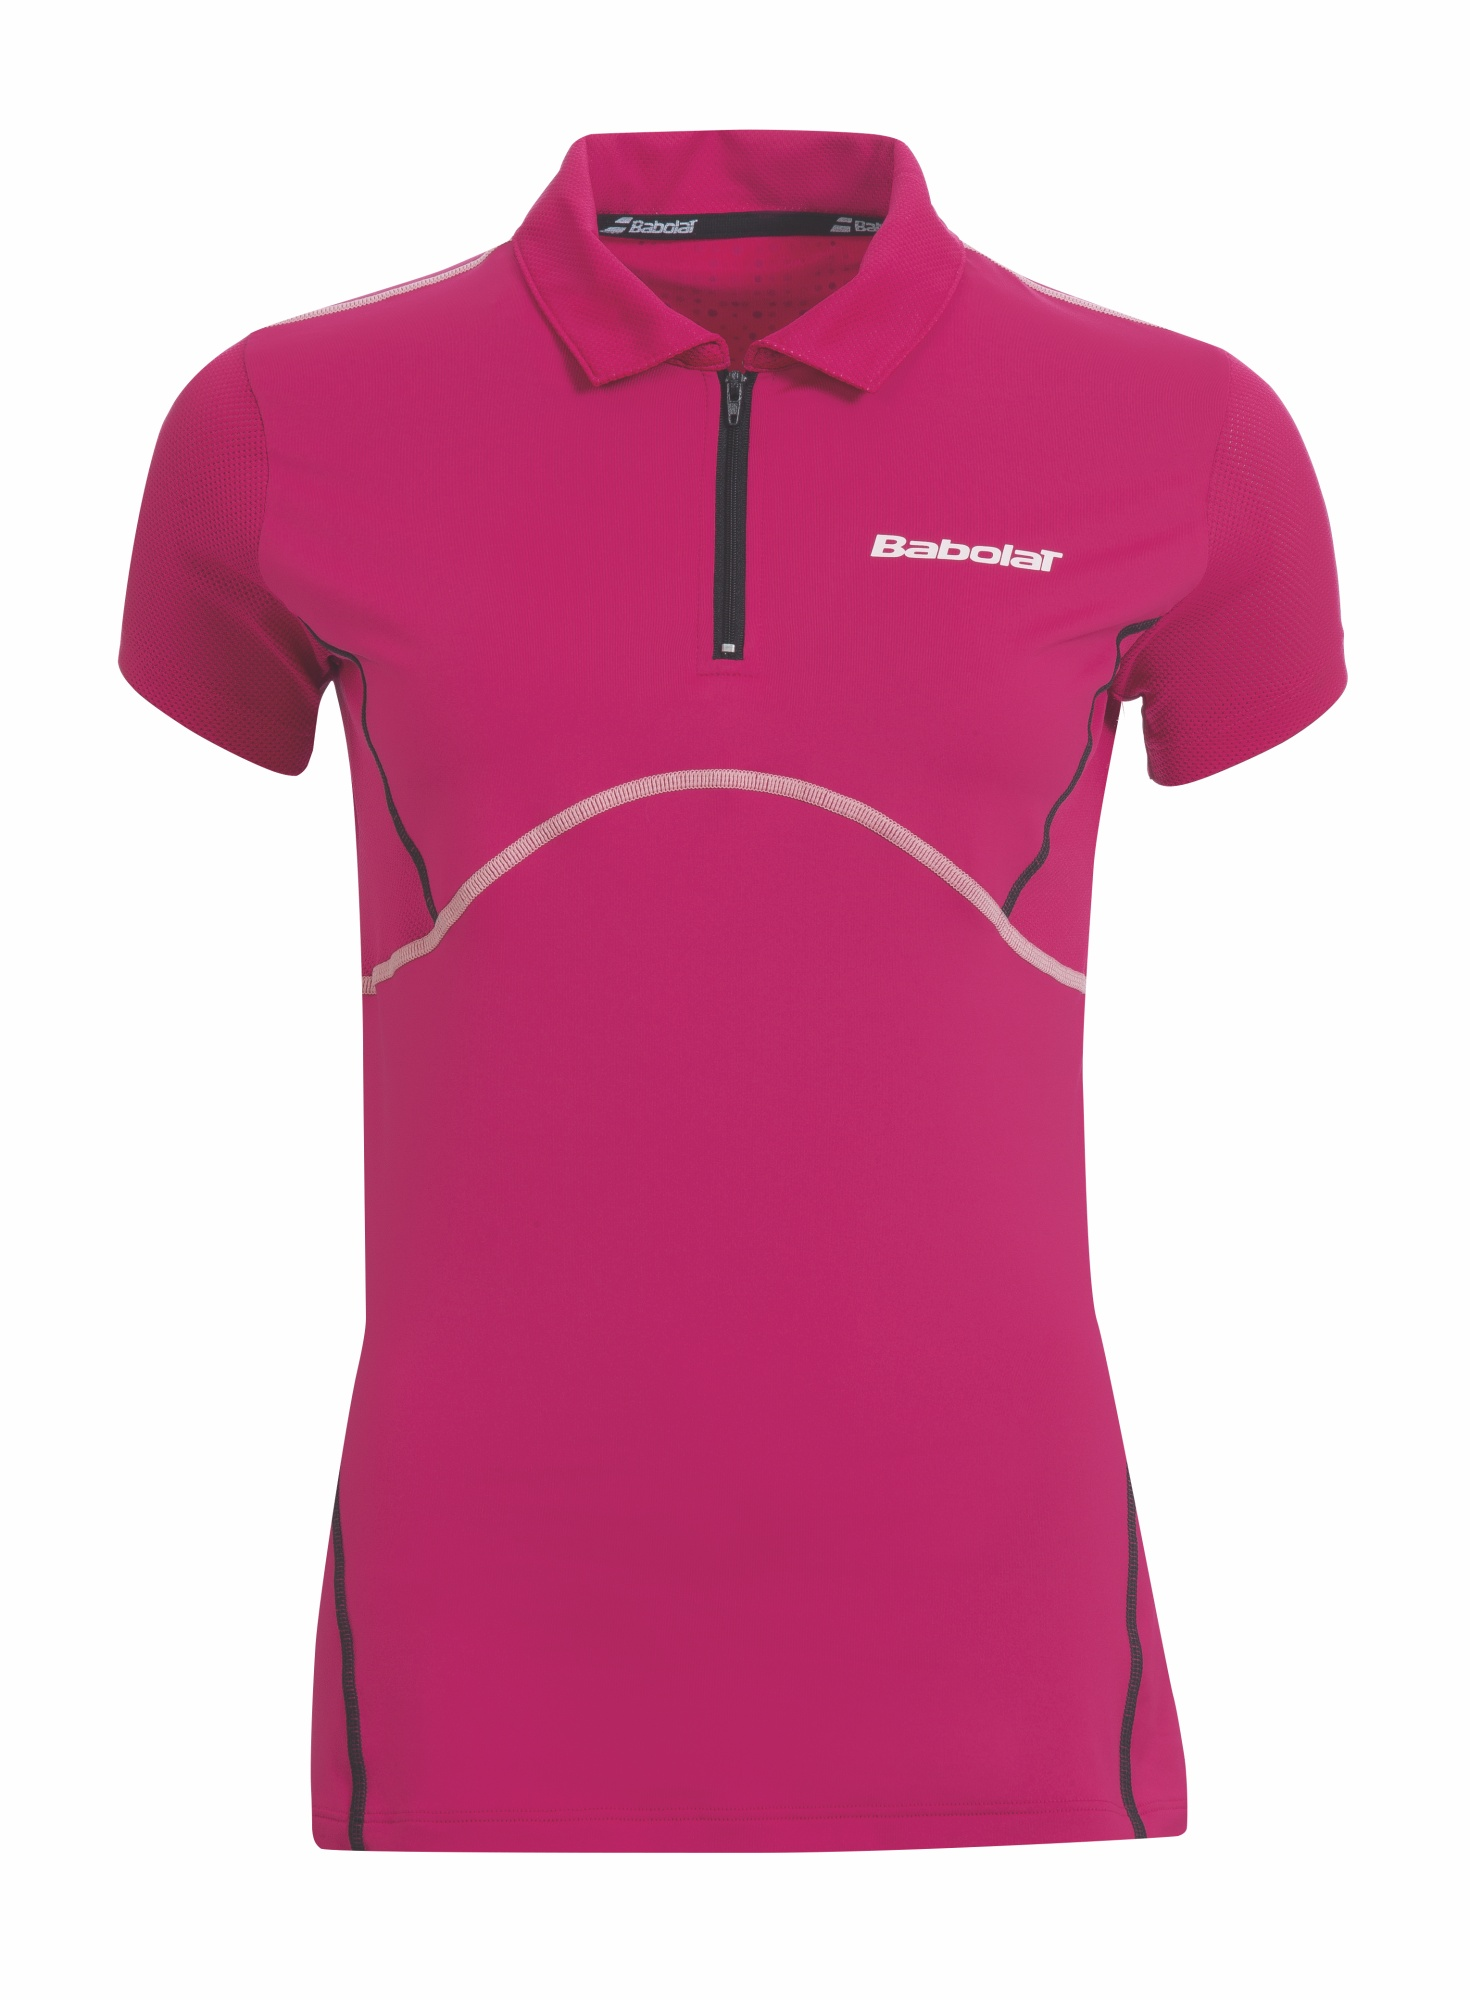 Babolat Polo Women Match Performance Cherry Red 2015 L